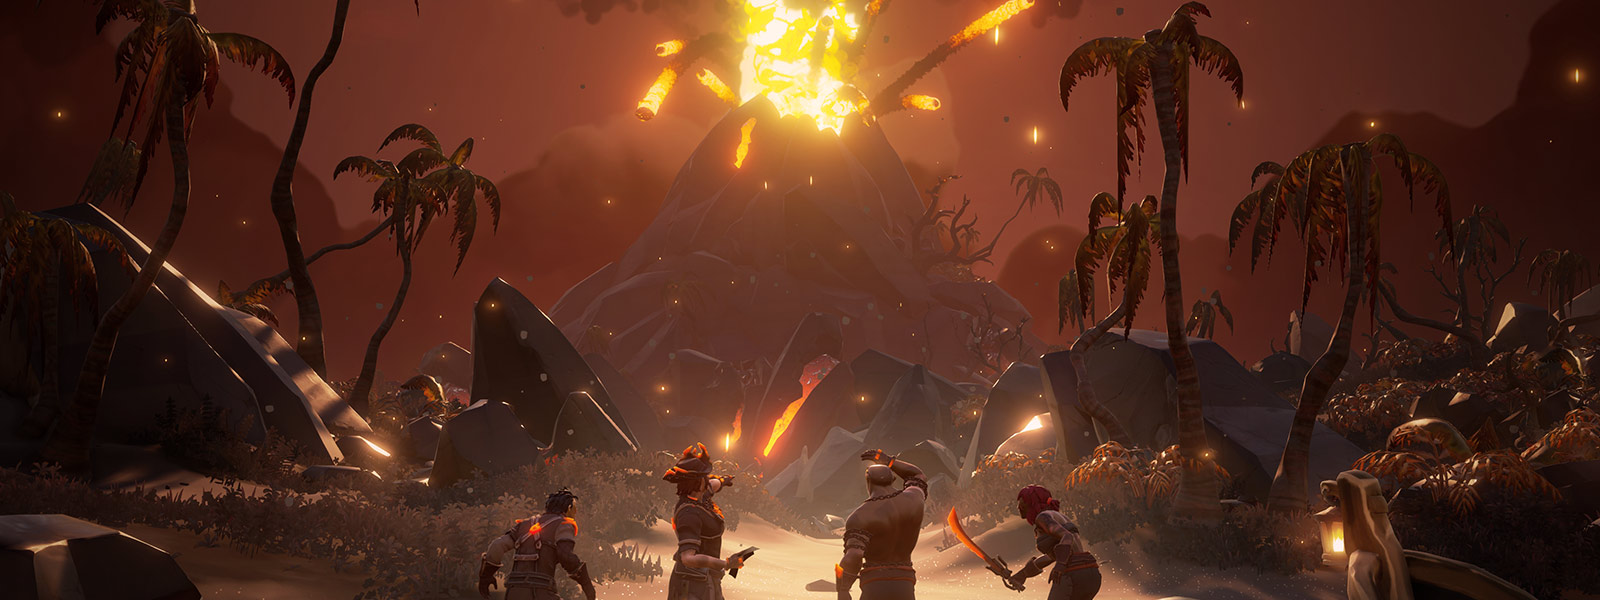 Four Sea of Thieves characters standing in front of Volcanic explosion